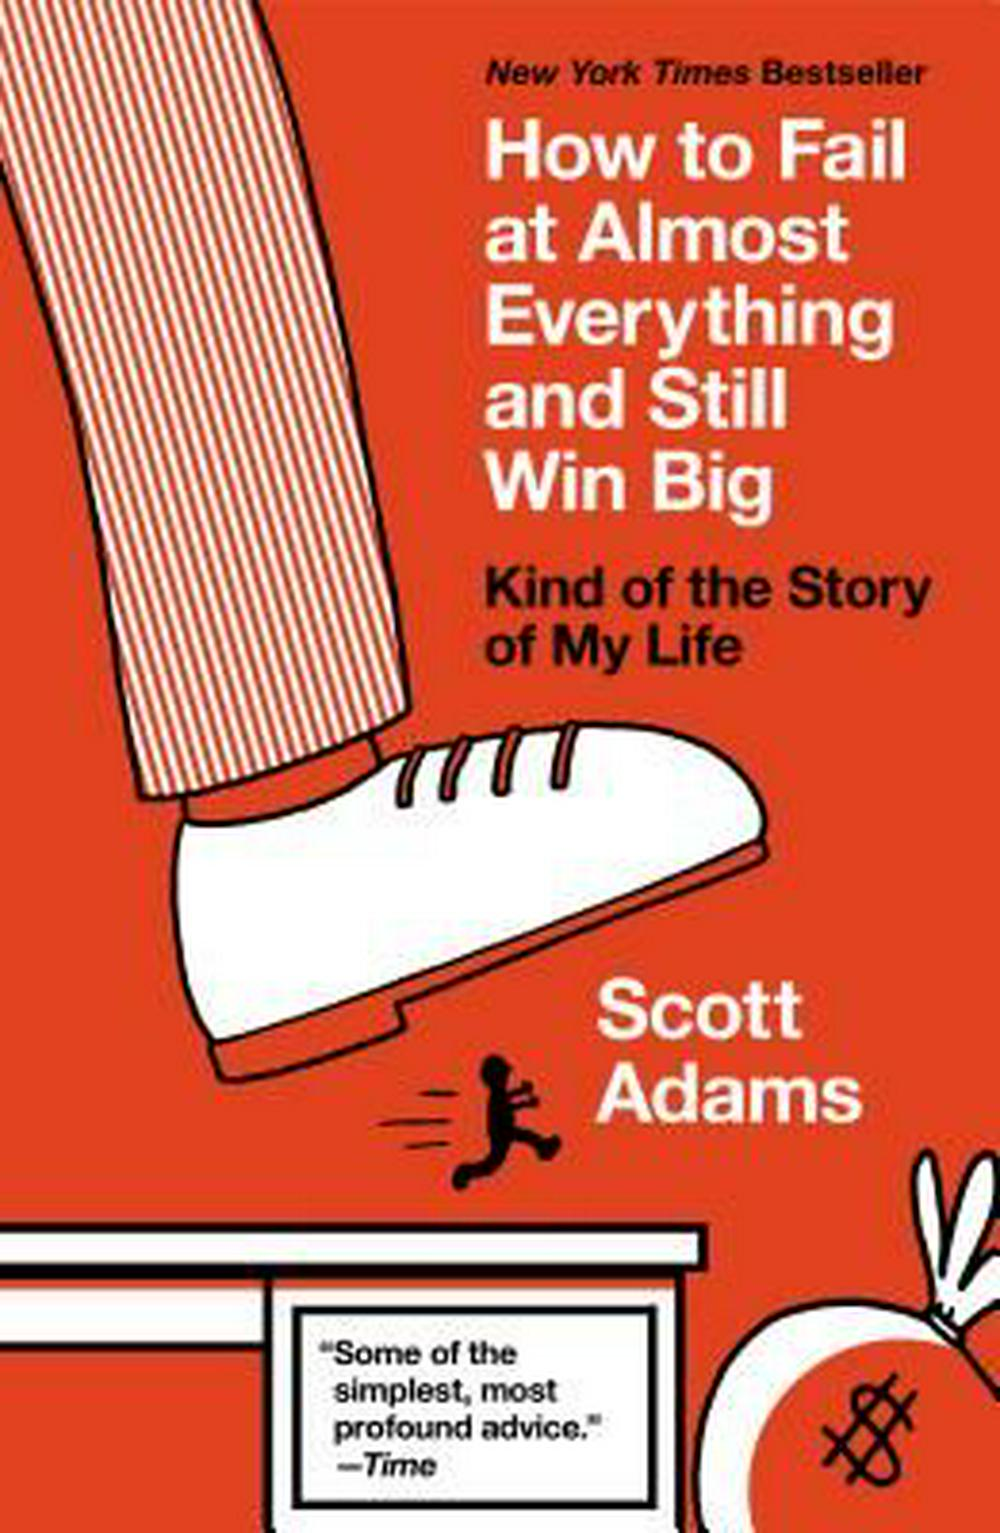 How to Fail at Almost Everything and Still Win Big: Kind of the Story of My Life by Scott Adams, ISBN: 9781591847748